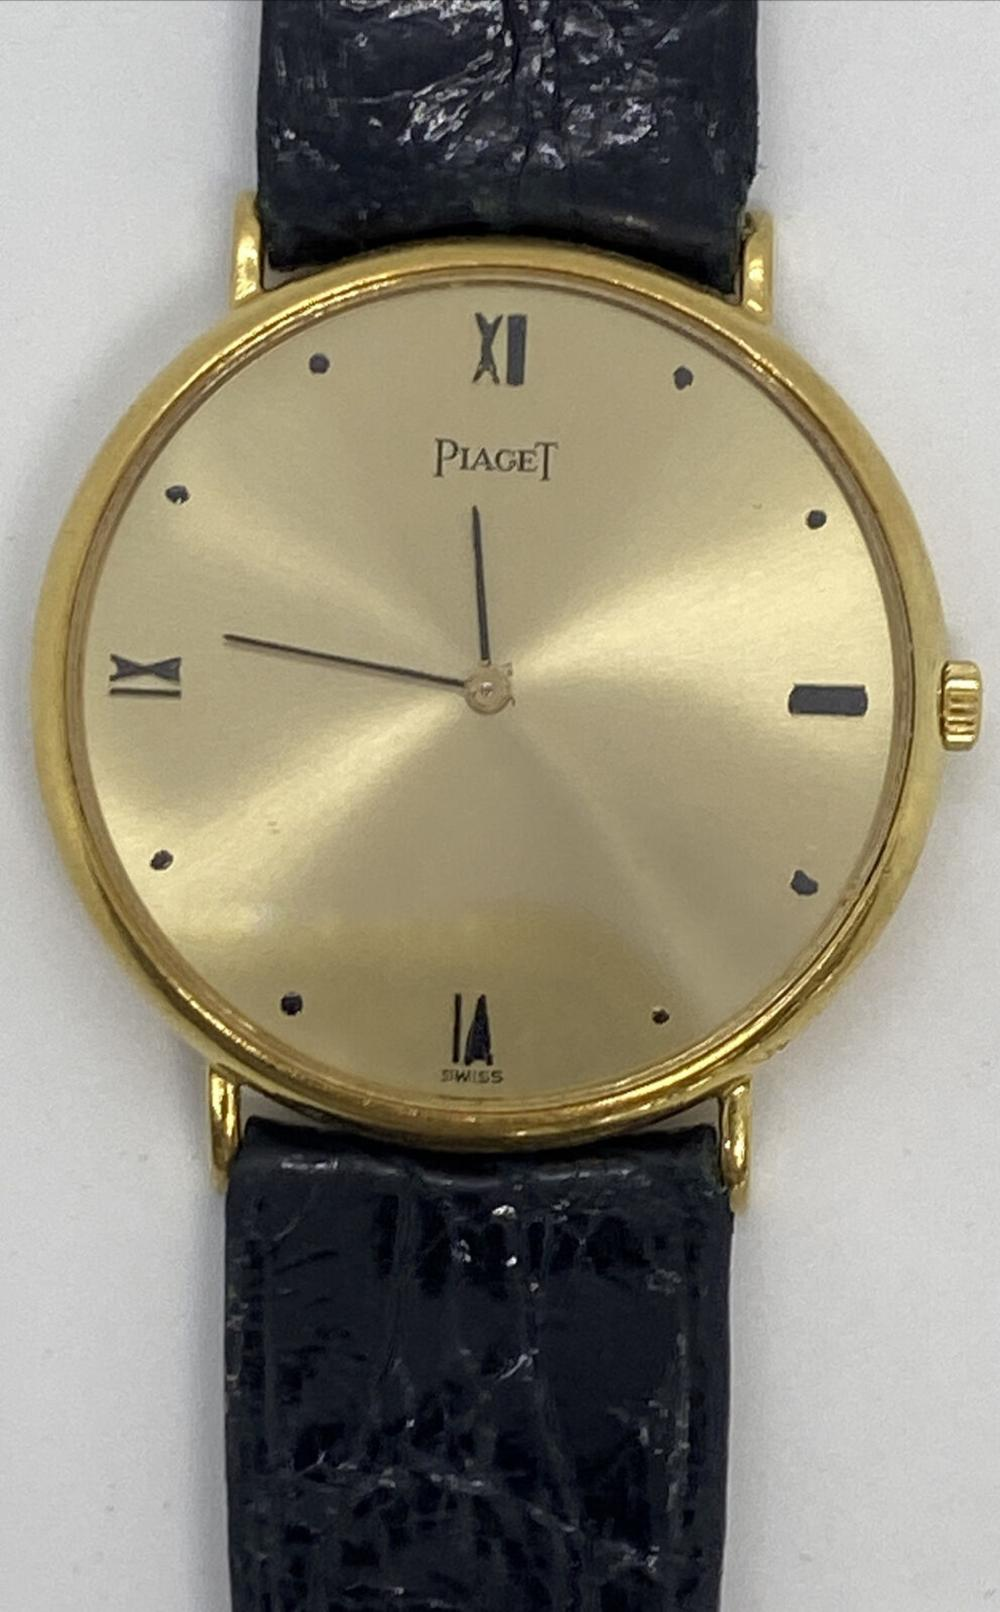 PIAGET SOLID 18K WATCH W/ BOX & PAPERS